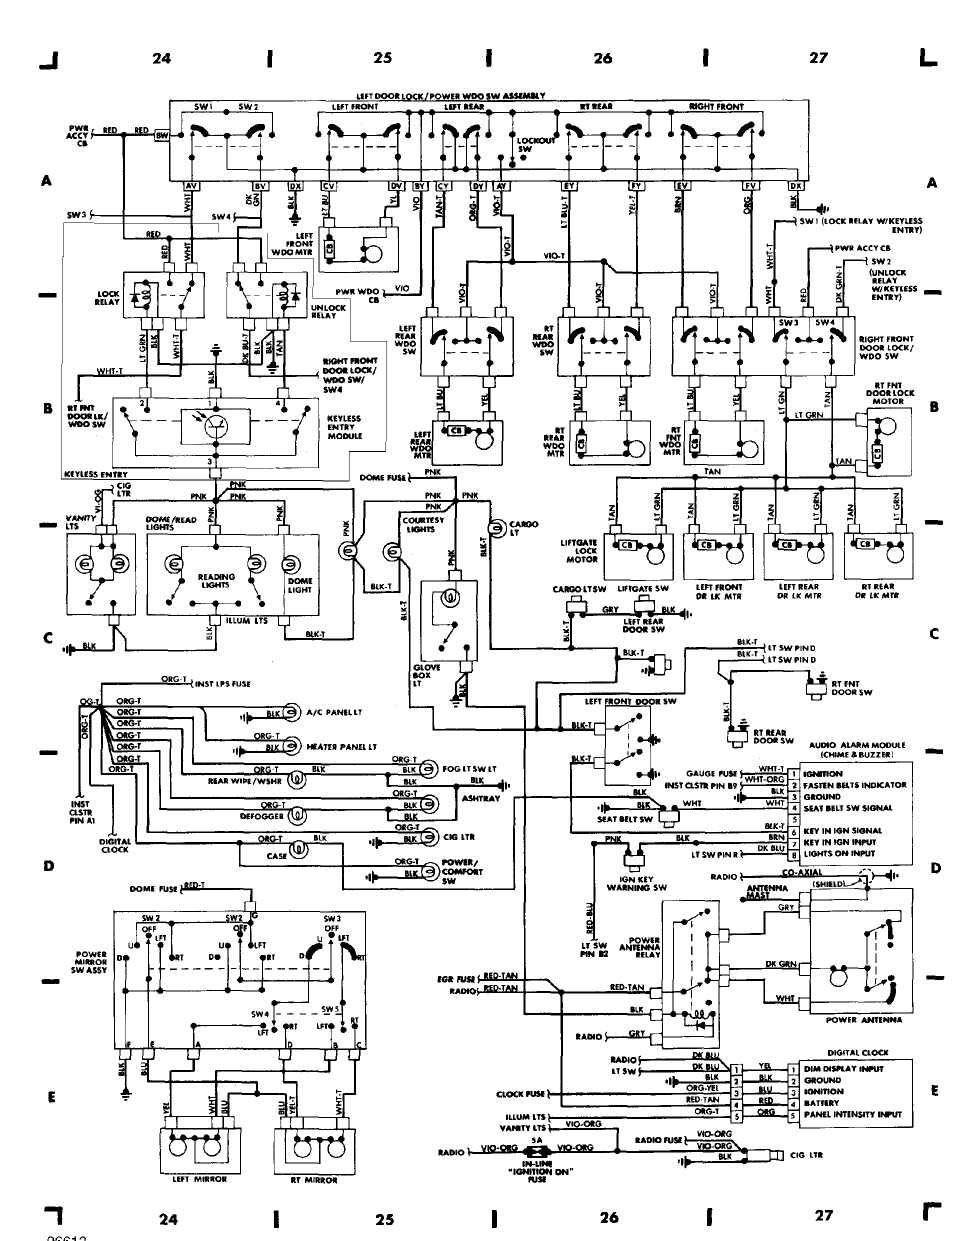 wiring_diagrams_html_61f5e0ad wiring diagrams 1984 1991 jeep cherokee (xj) jeep jeep cherokee headlight switch wiring diagram at virtualis.co